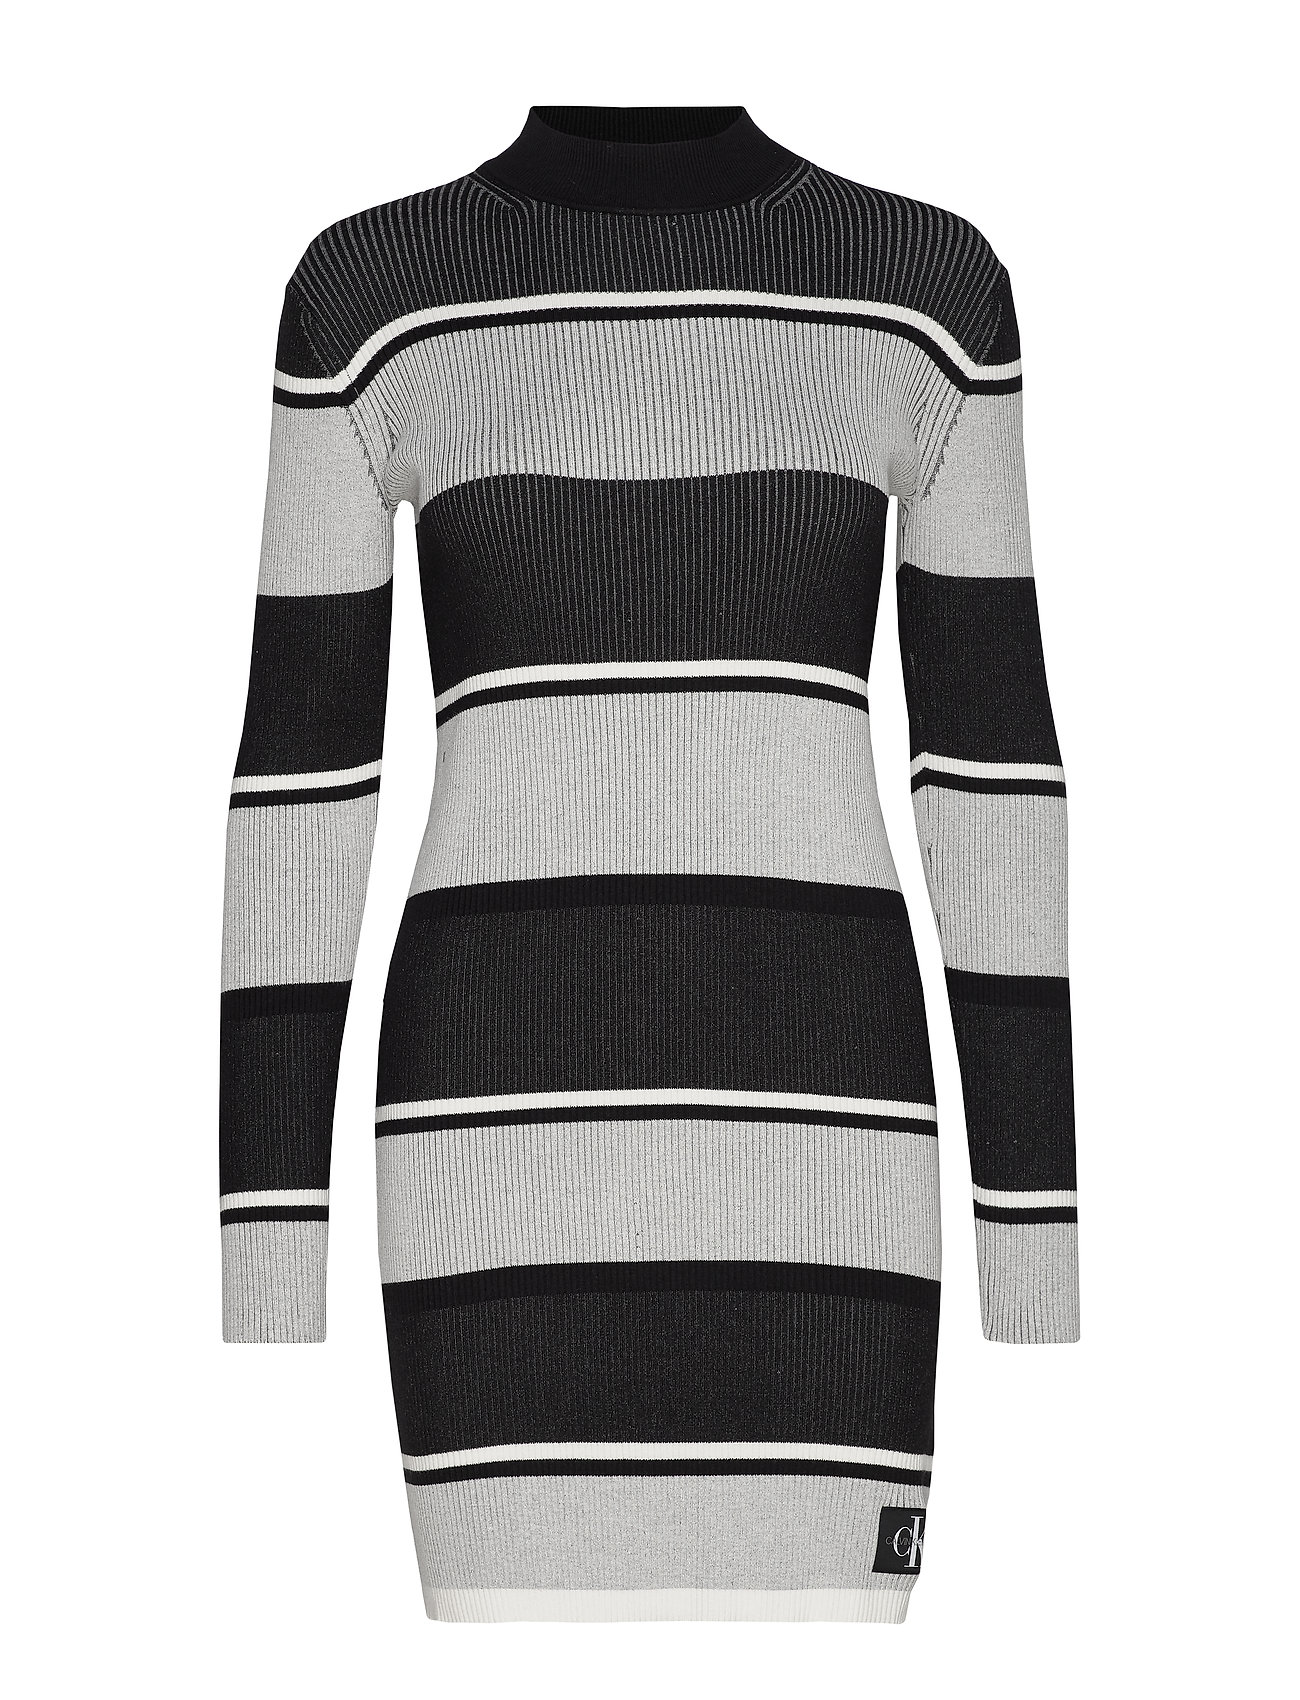 Calvin Klein Jeans LONG SLEEVE RIB SWEATER DRESS - BLACK / WHITE / GREY STRIPE